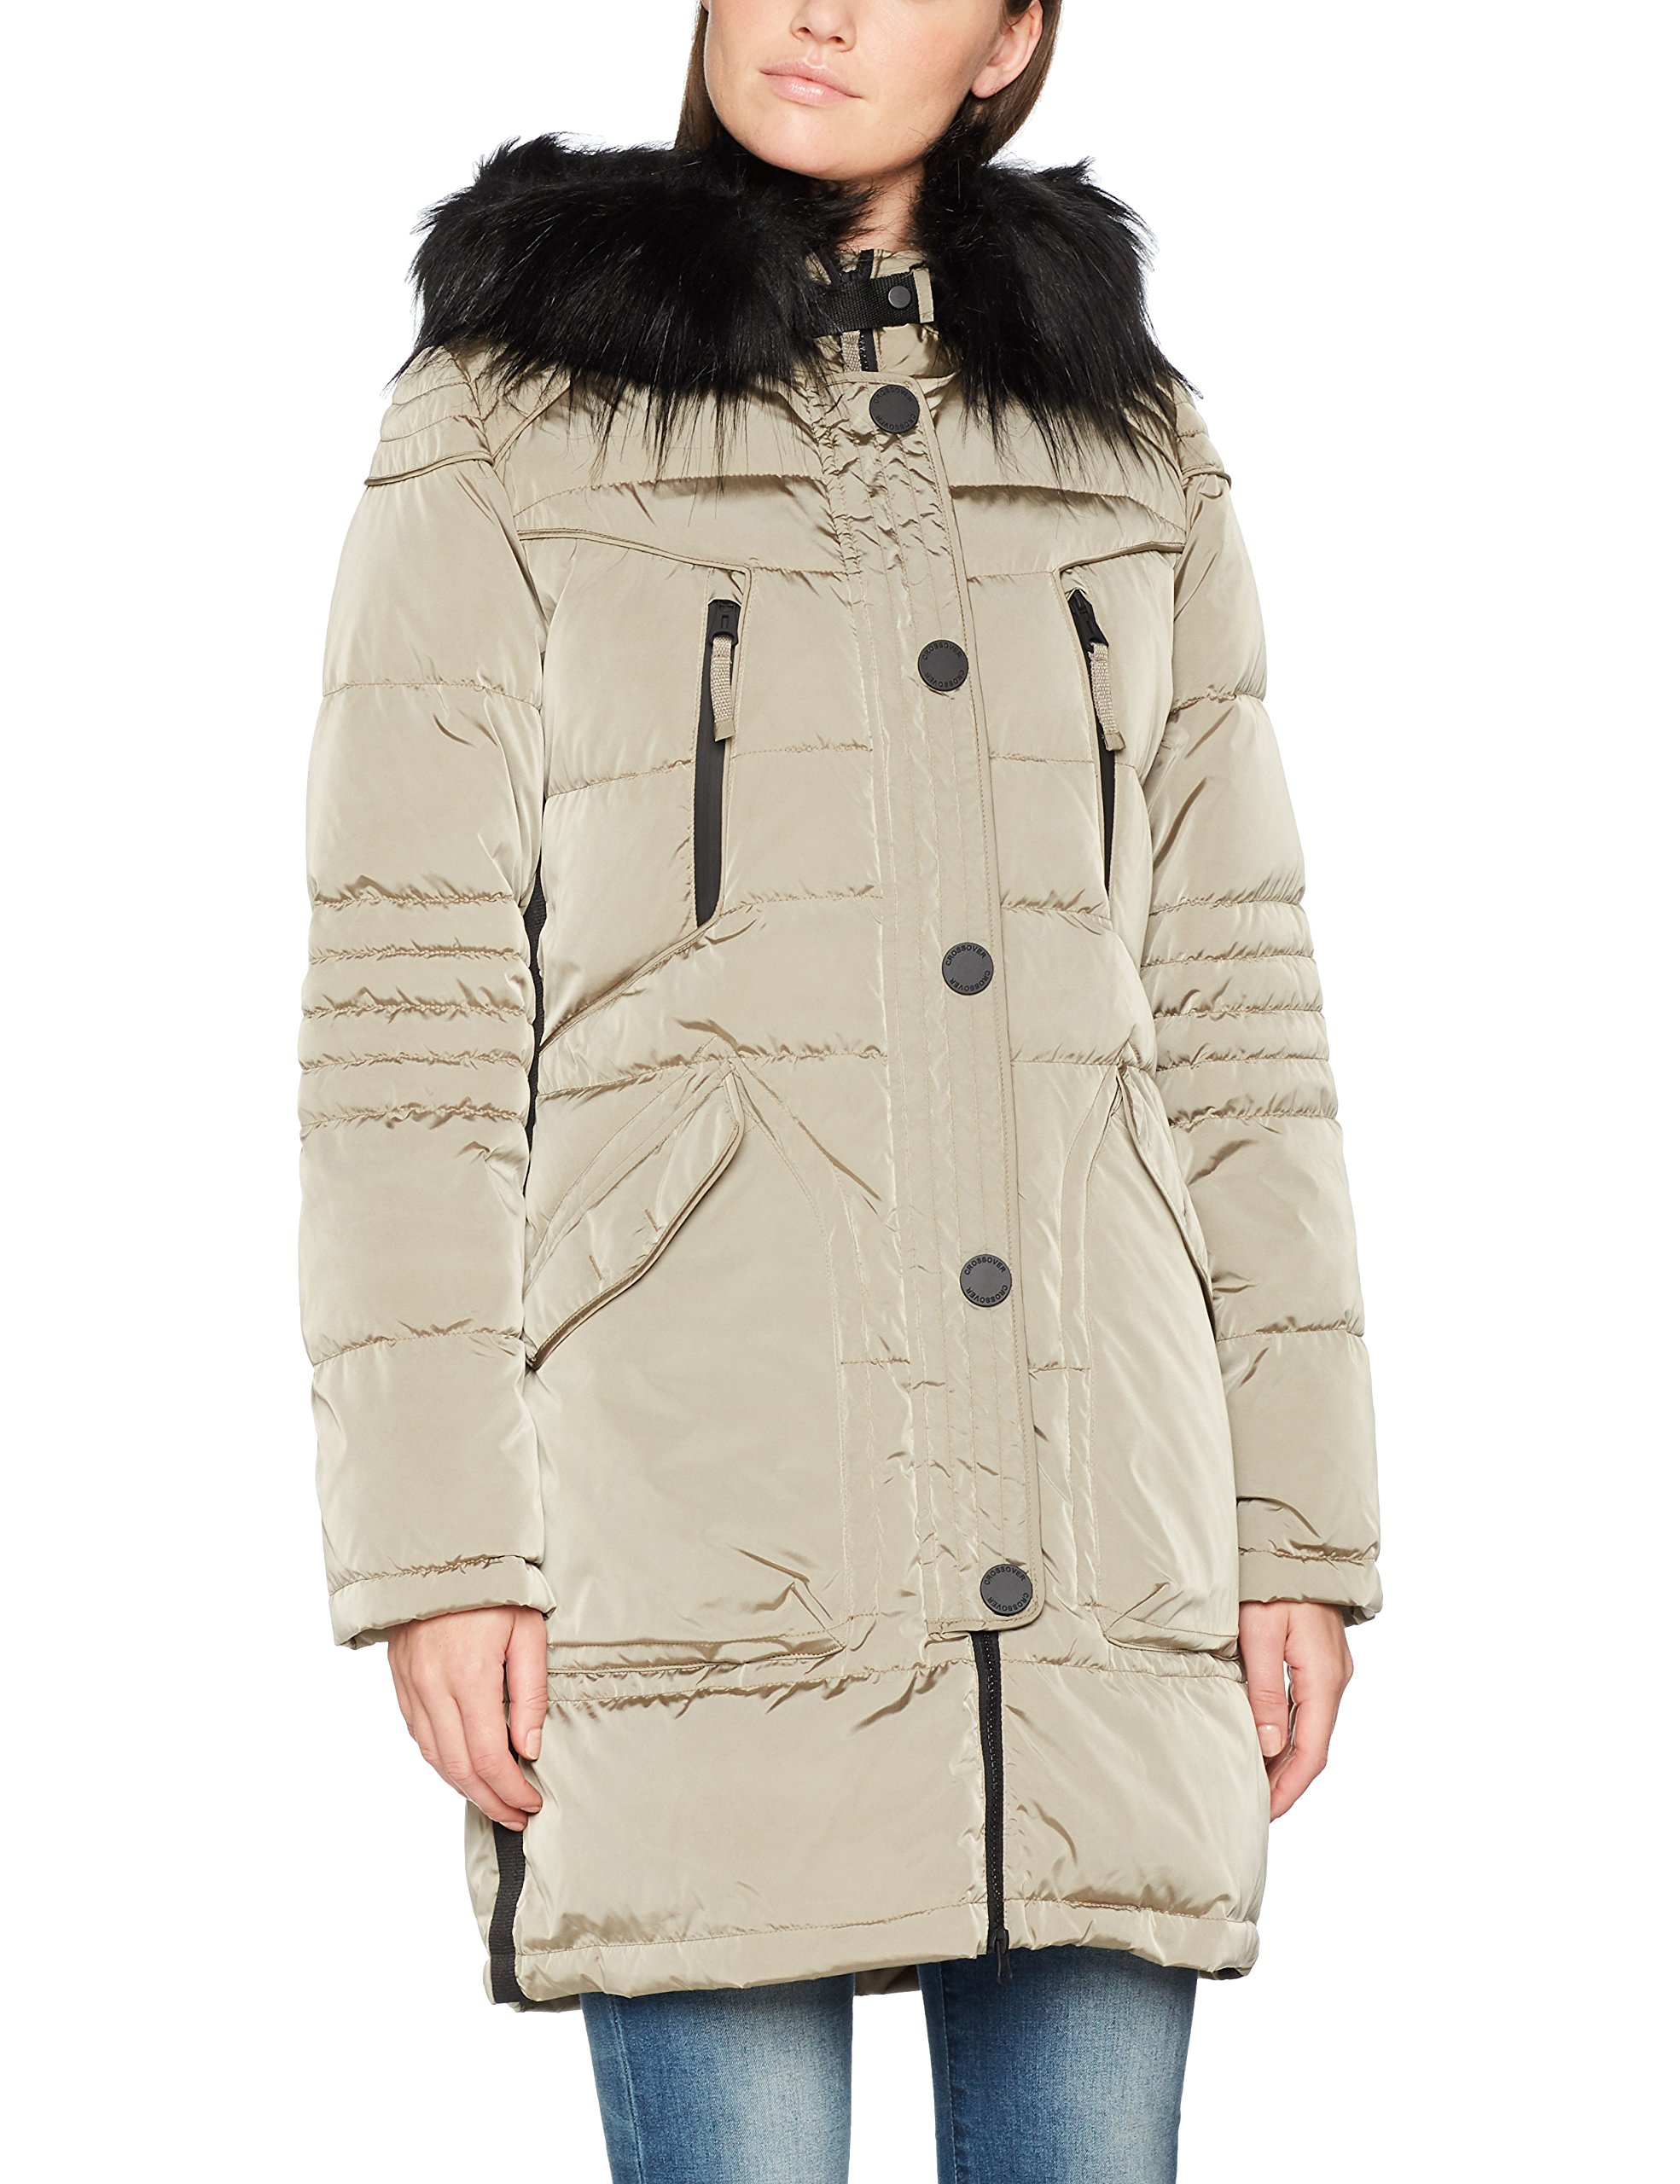 ParkaBeigedesert 731542 9528 Barclay 4325 Betty Femme Taupe EYHeD9IW2